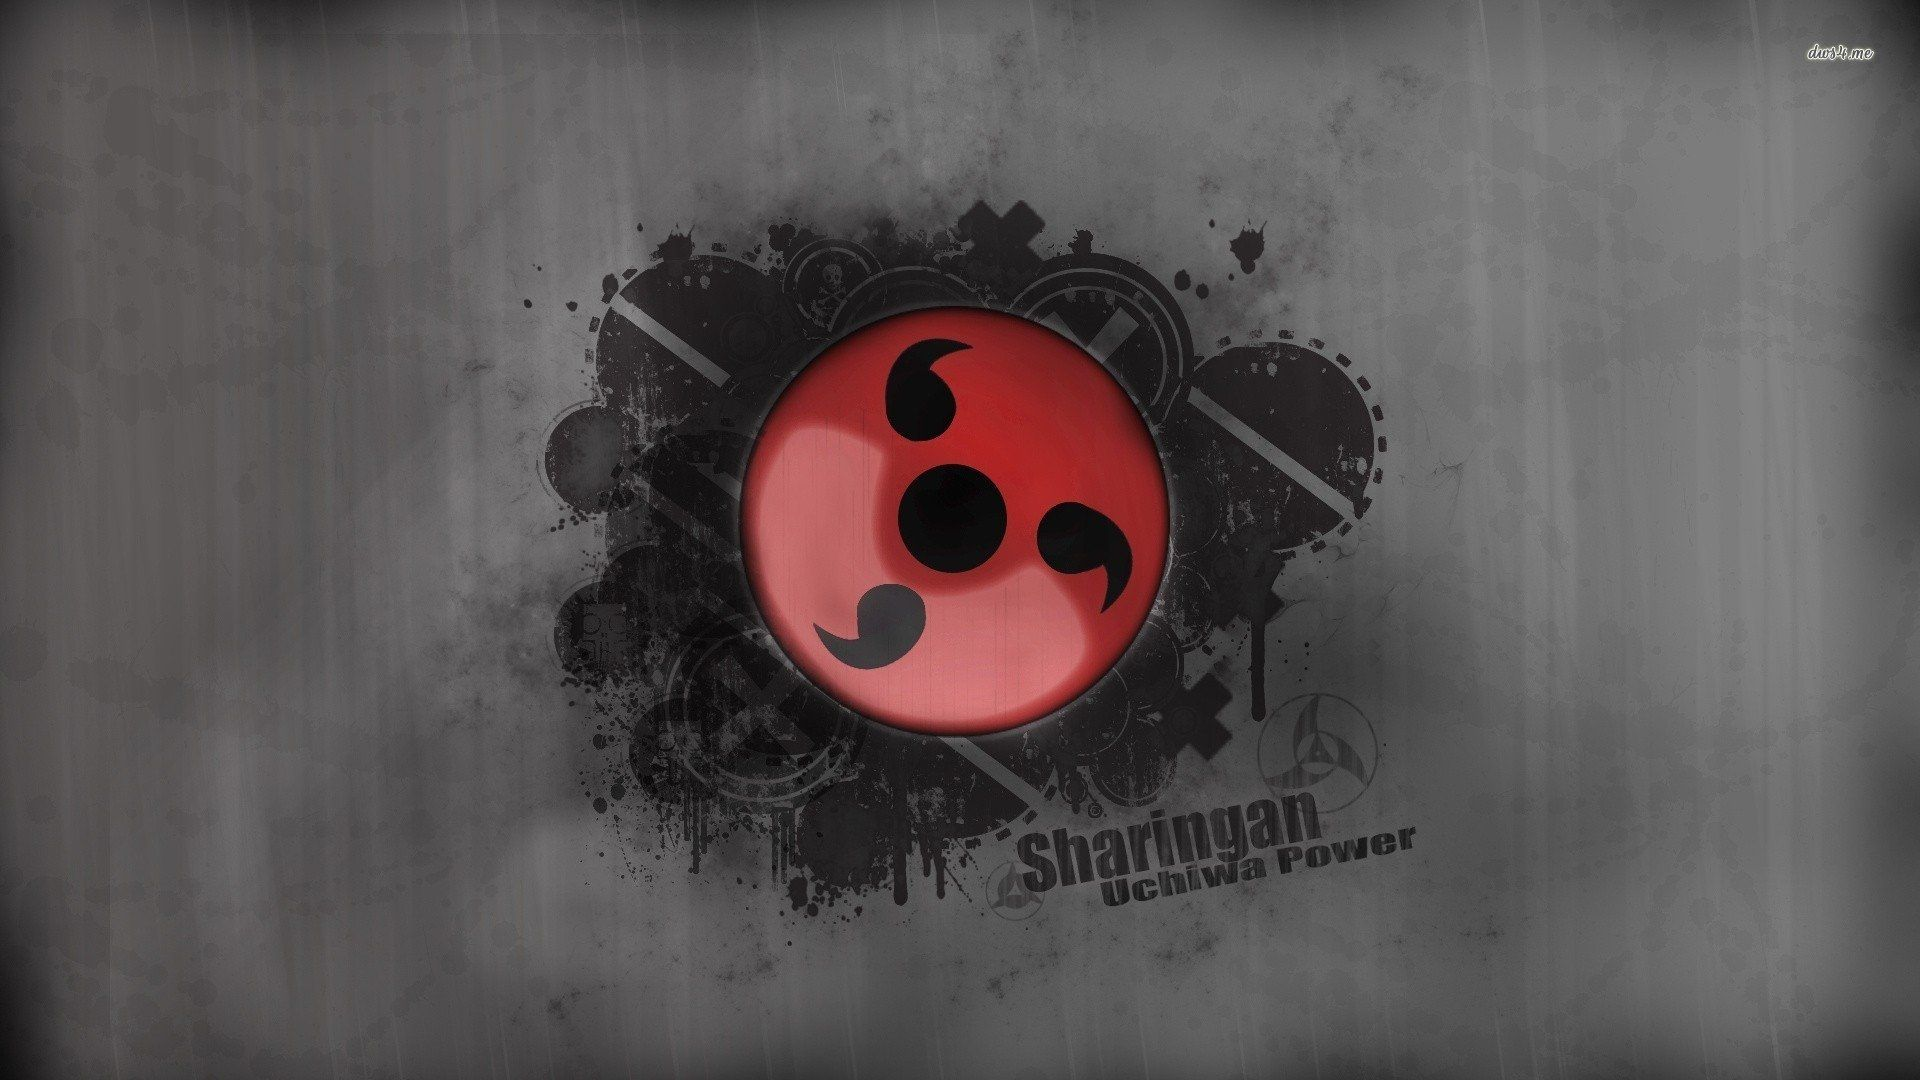 Anime Naruto Sharingan Naruto Wallpaper Naruto Wallpaper Sharingan Wallpapers Naruto Sharingan